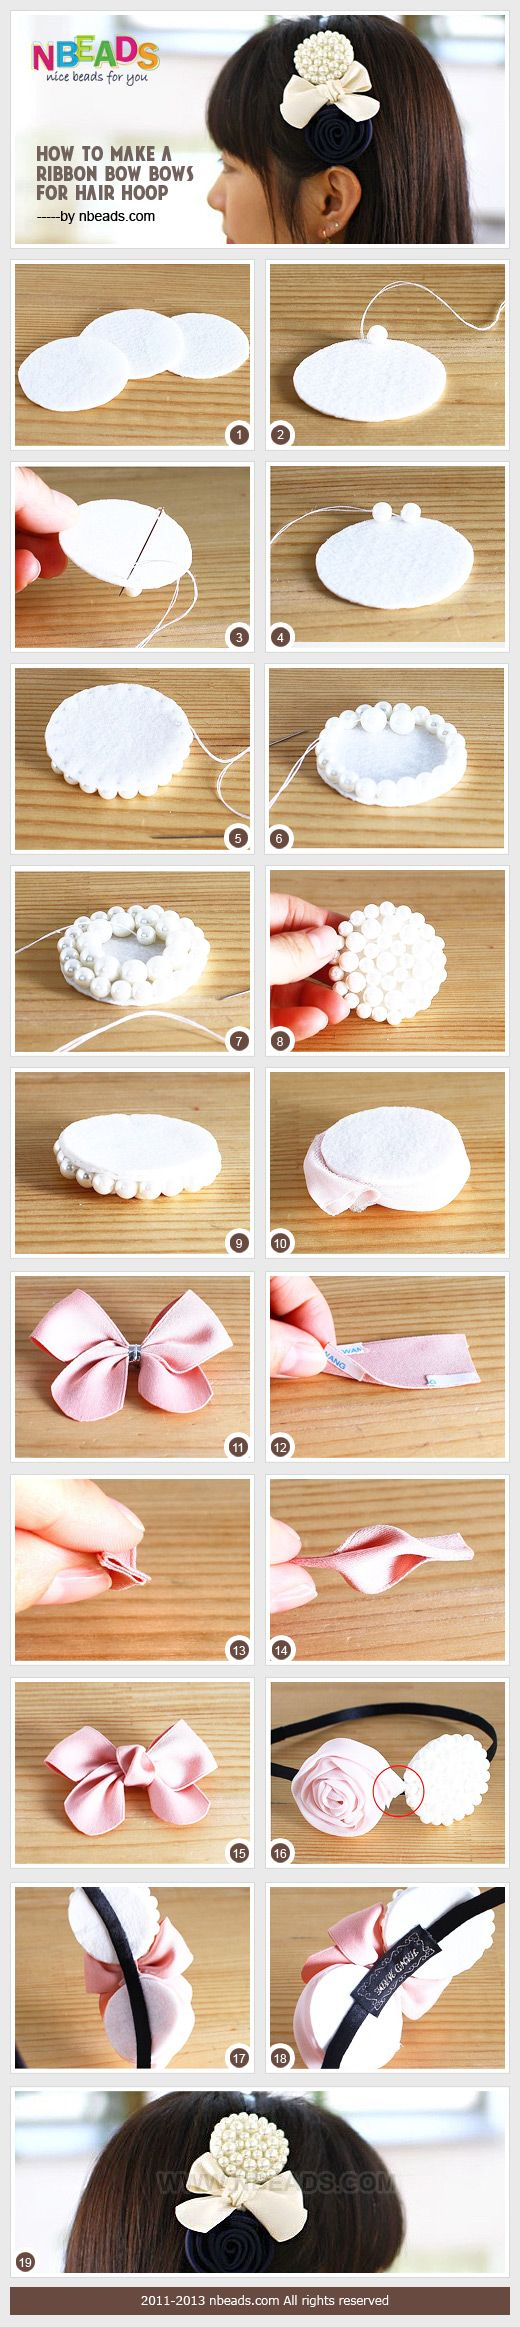 How To Make A Ribbon Bow-Bows For Hair Hoop Pictures, Photos, and Images for Facebook, Tumblr, Pinterest, and Twitter